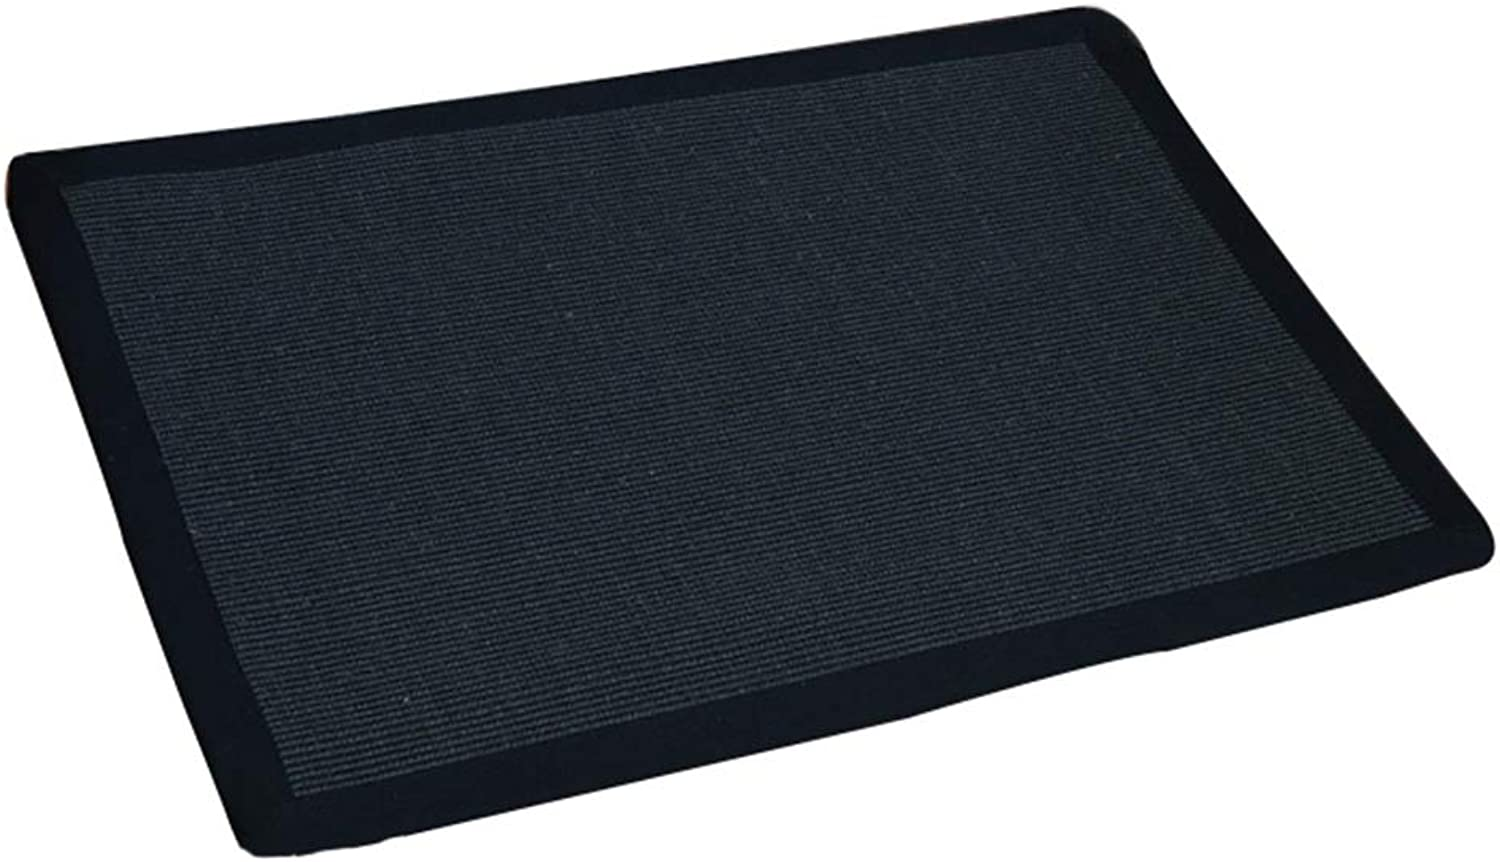 JIAJUAN Natural Material Front Doormat Entrance Non Slip Withstand Voltage Air Permeability Dirt Trapper Mats Durable Floor Mat (color   A, Size   60X150cm)